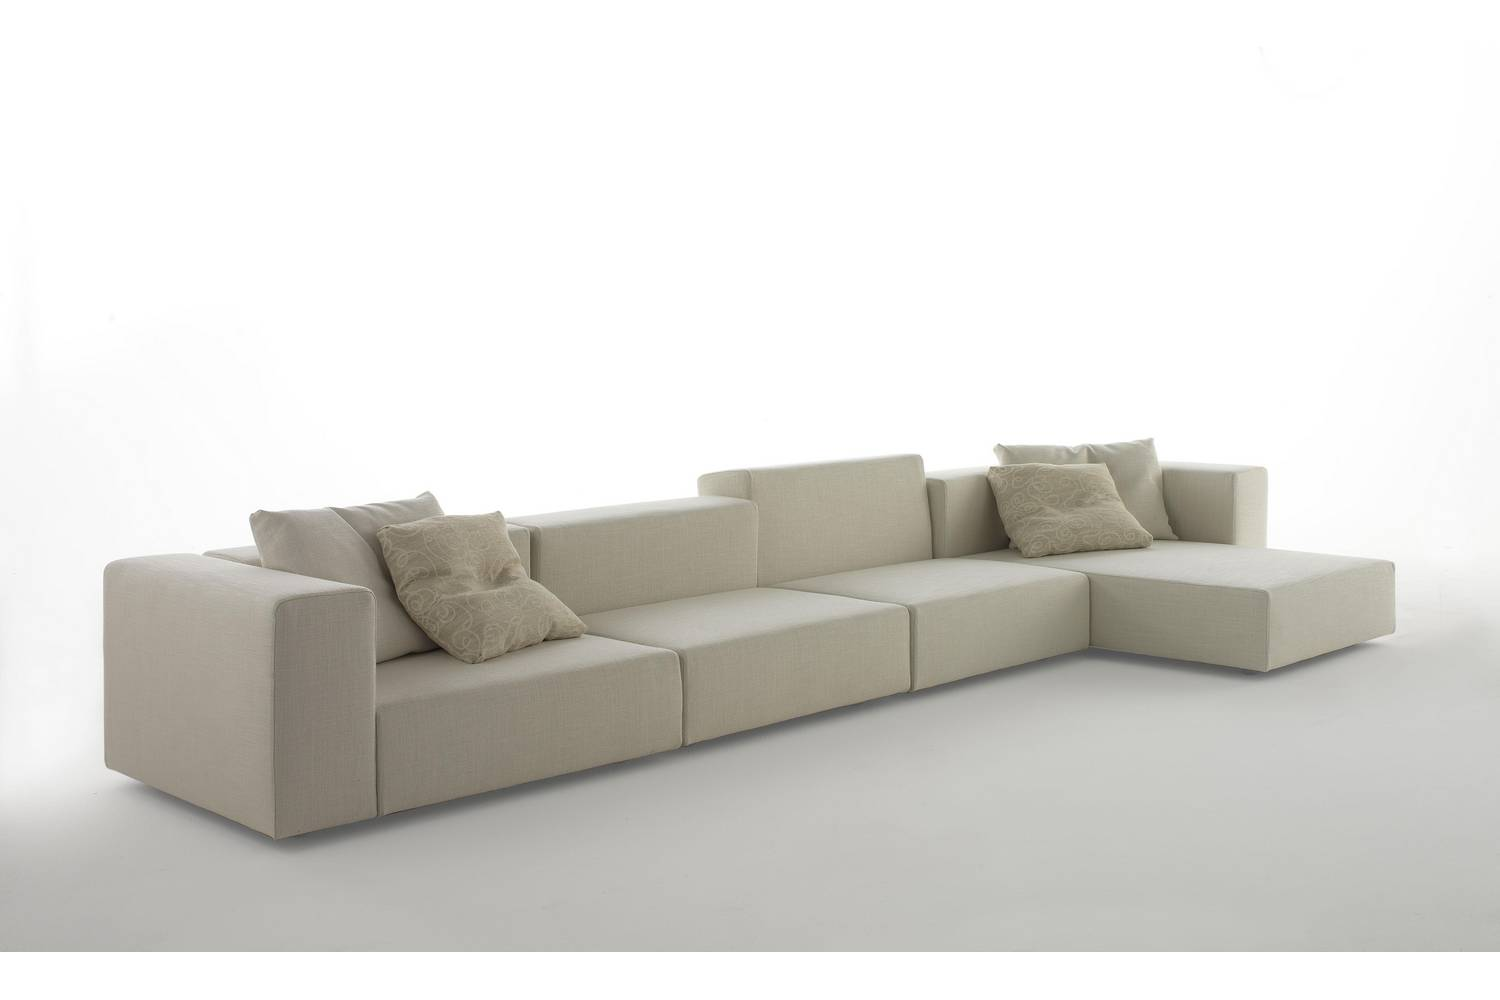 wall sofa cheap tufted 1 by piero lissoni for living divani space